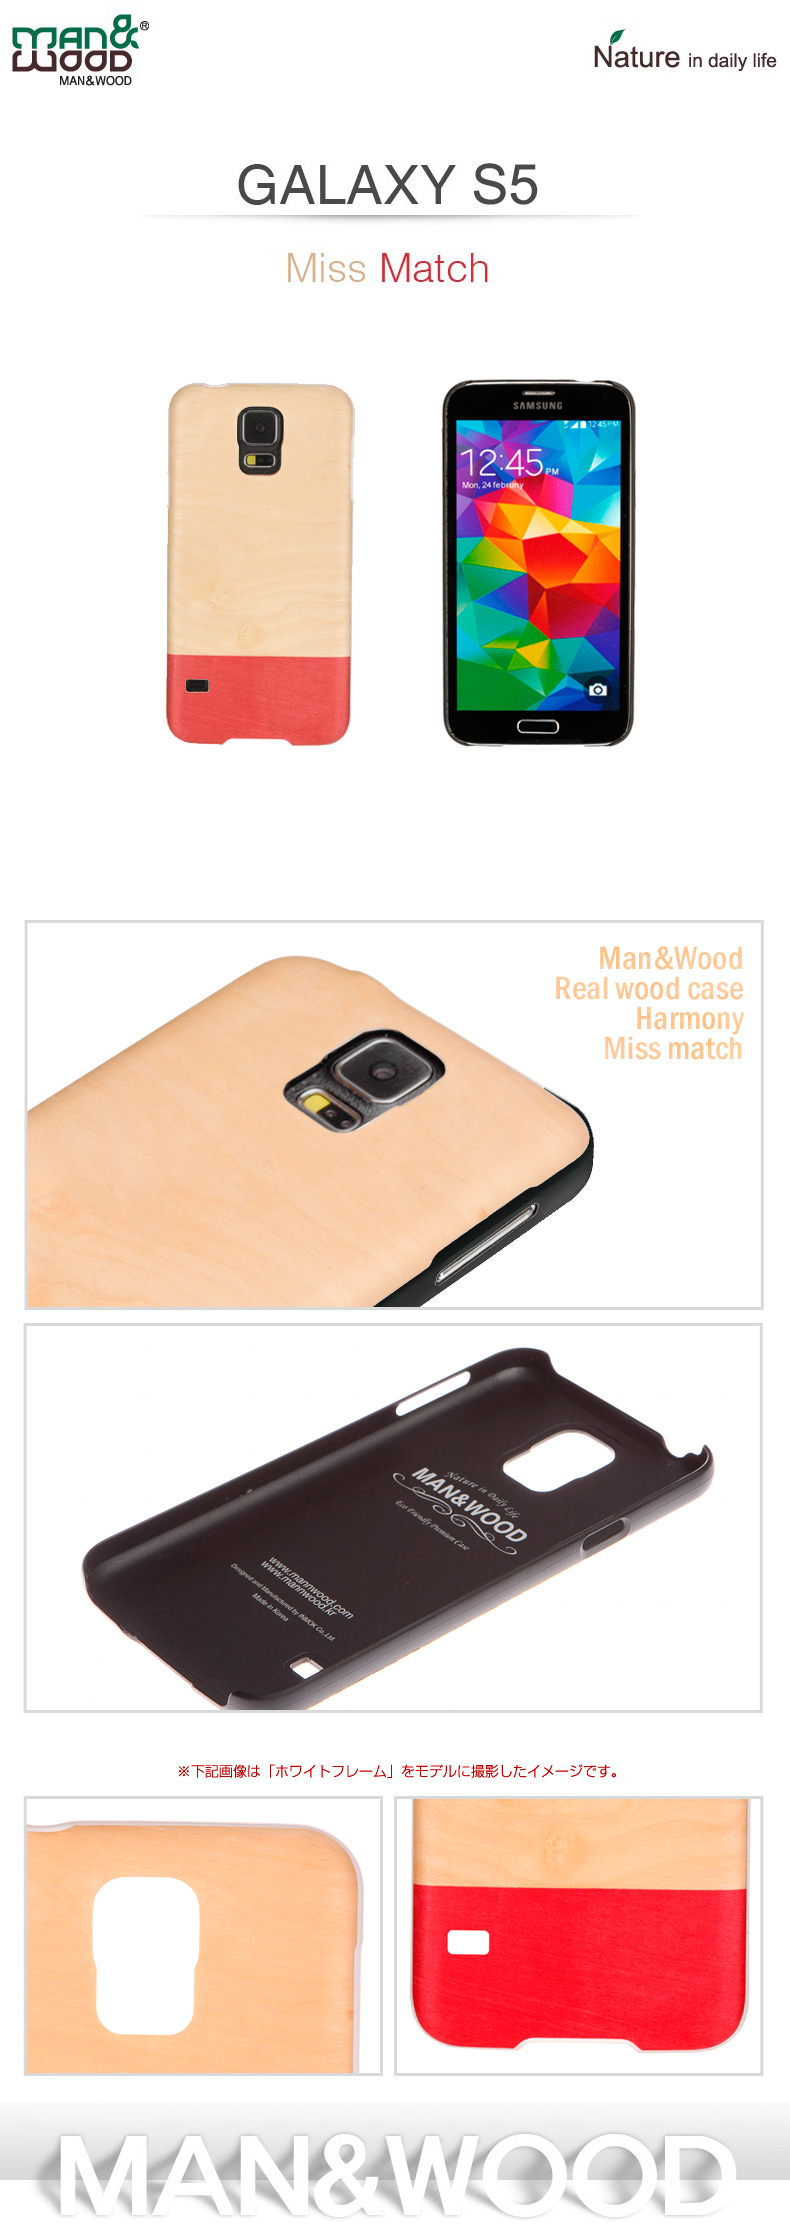 商品詳細 GALAXY S5 ケースM&W天然木Real wood cas Harmony Miss match